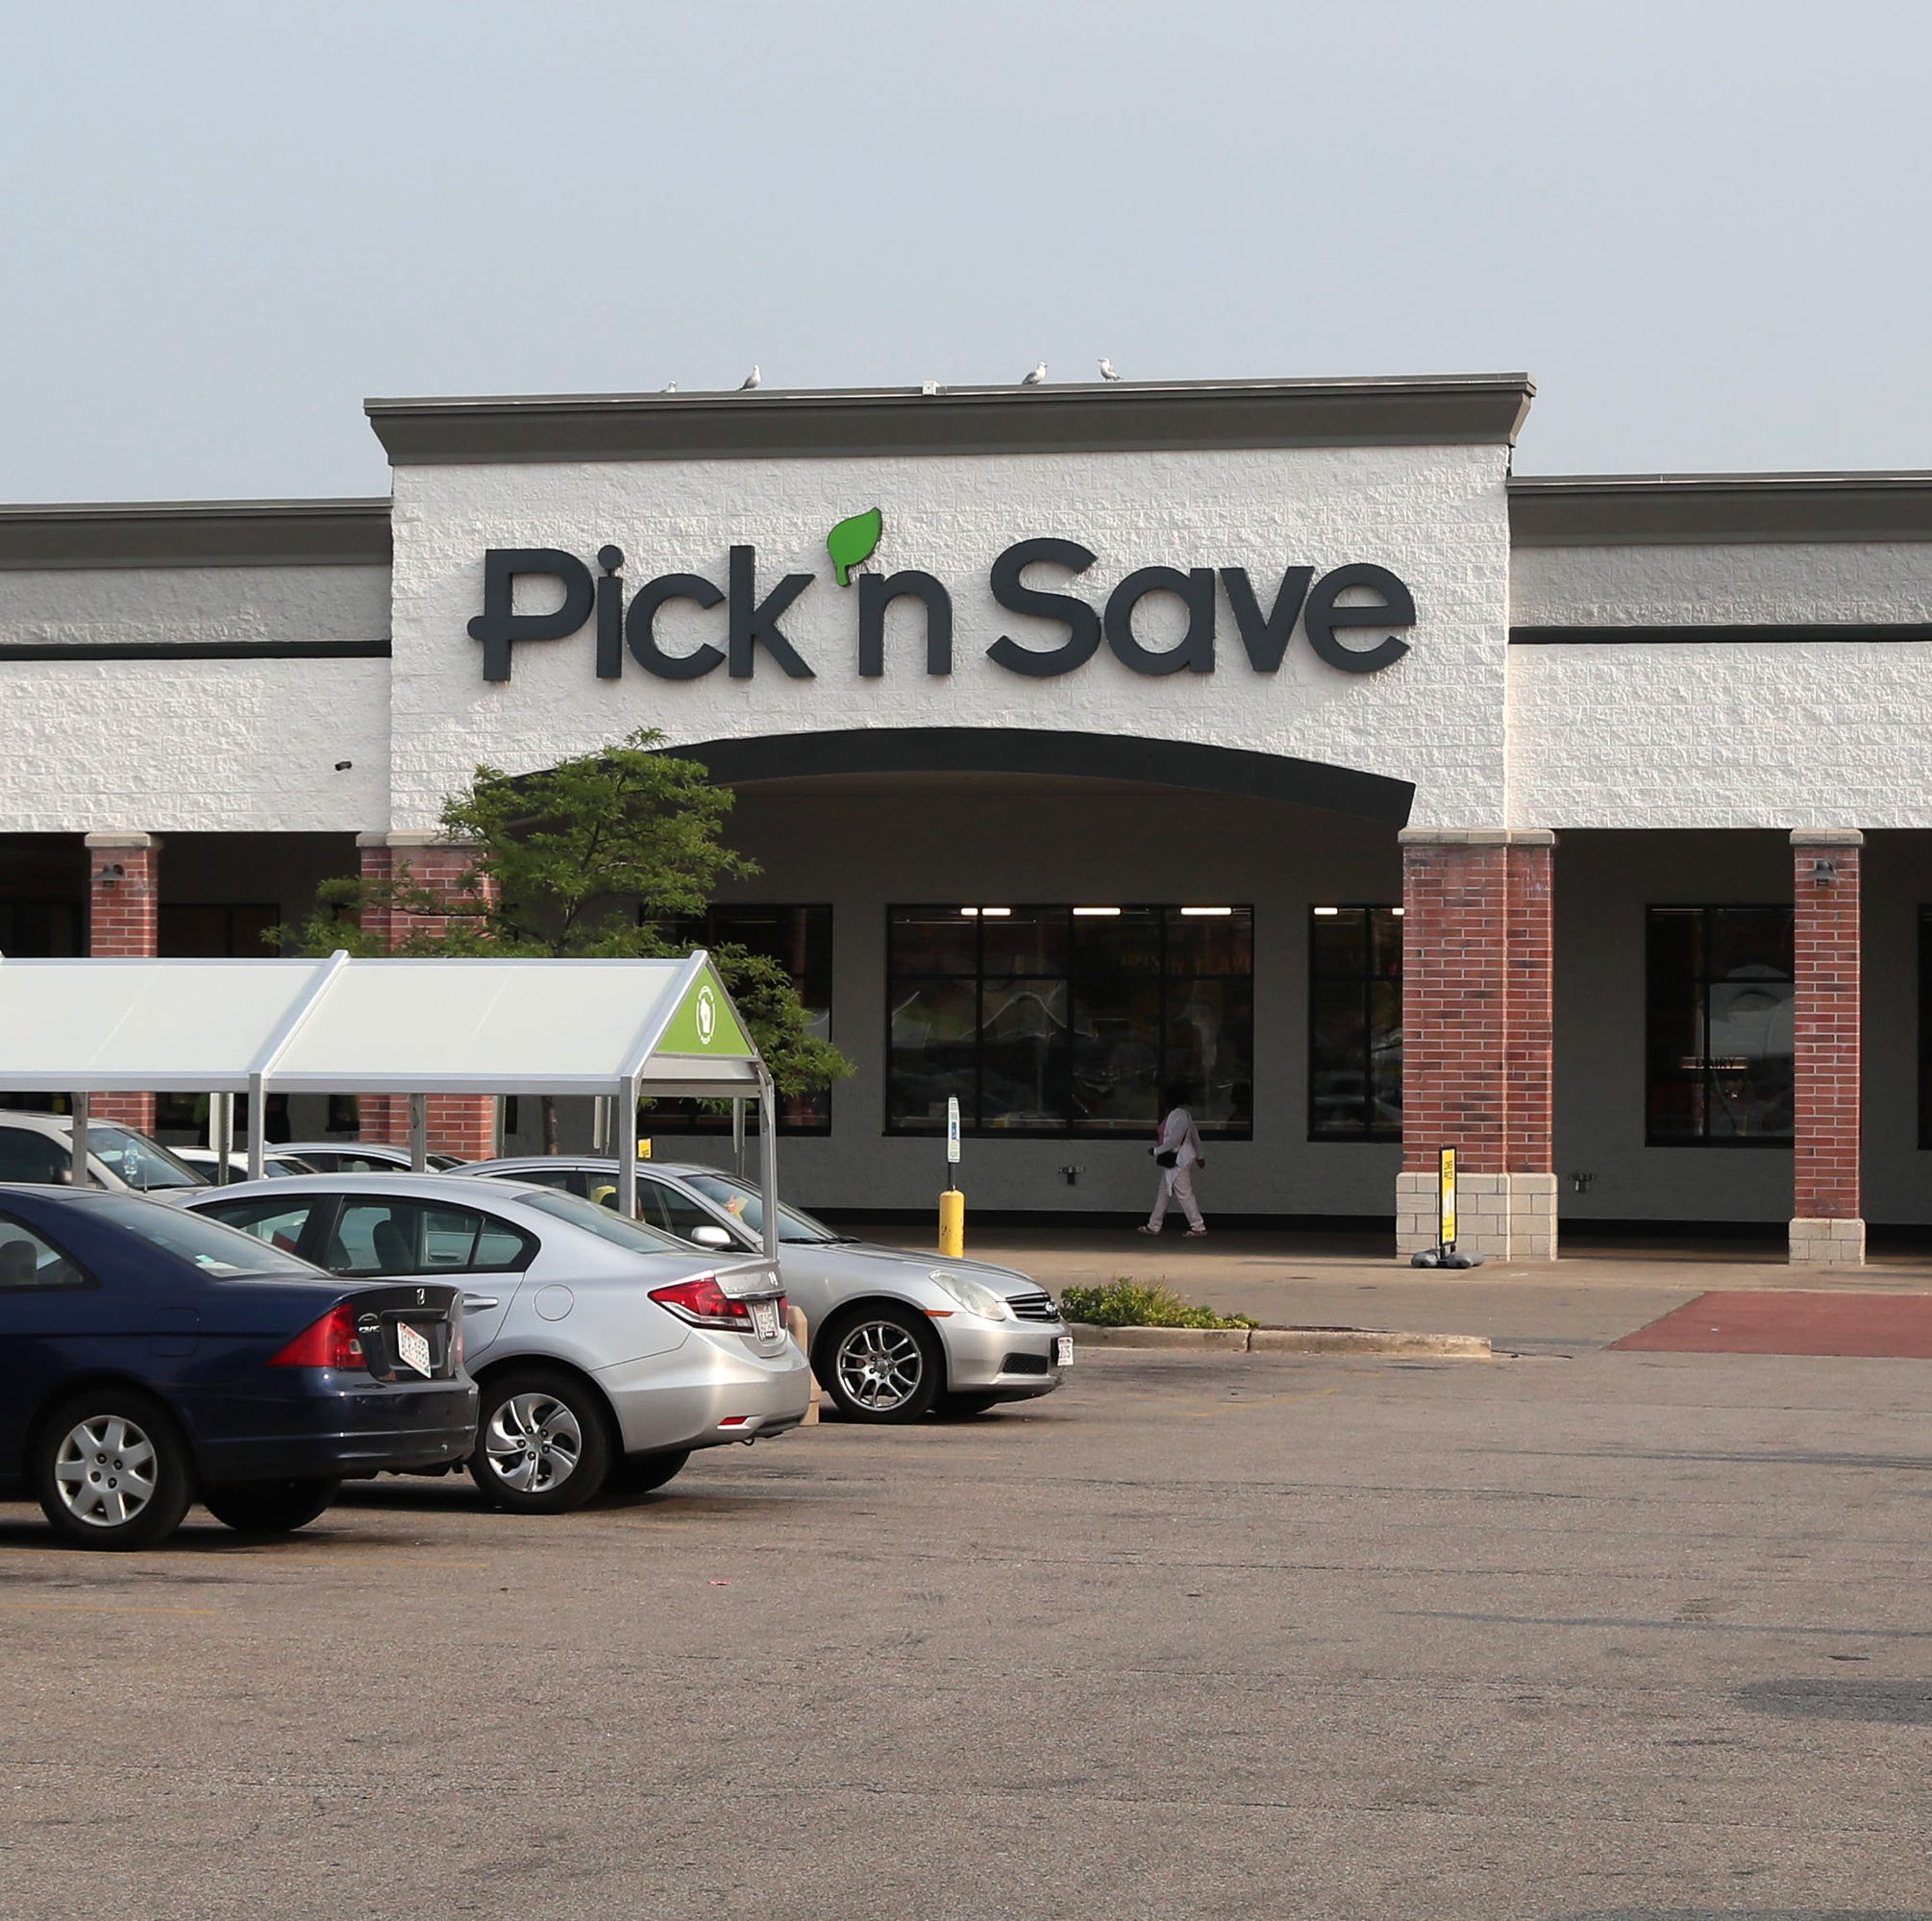 Kroger buying Shopko's pharmacy business. Prescriptions will move to Pick 'n Save, Metro Market and Copps stores in Wisconsin.